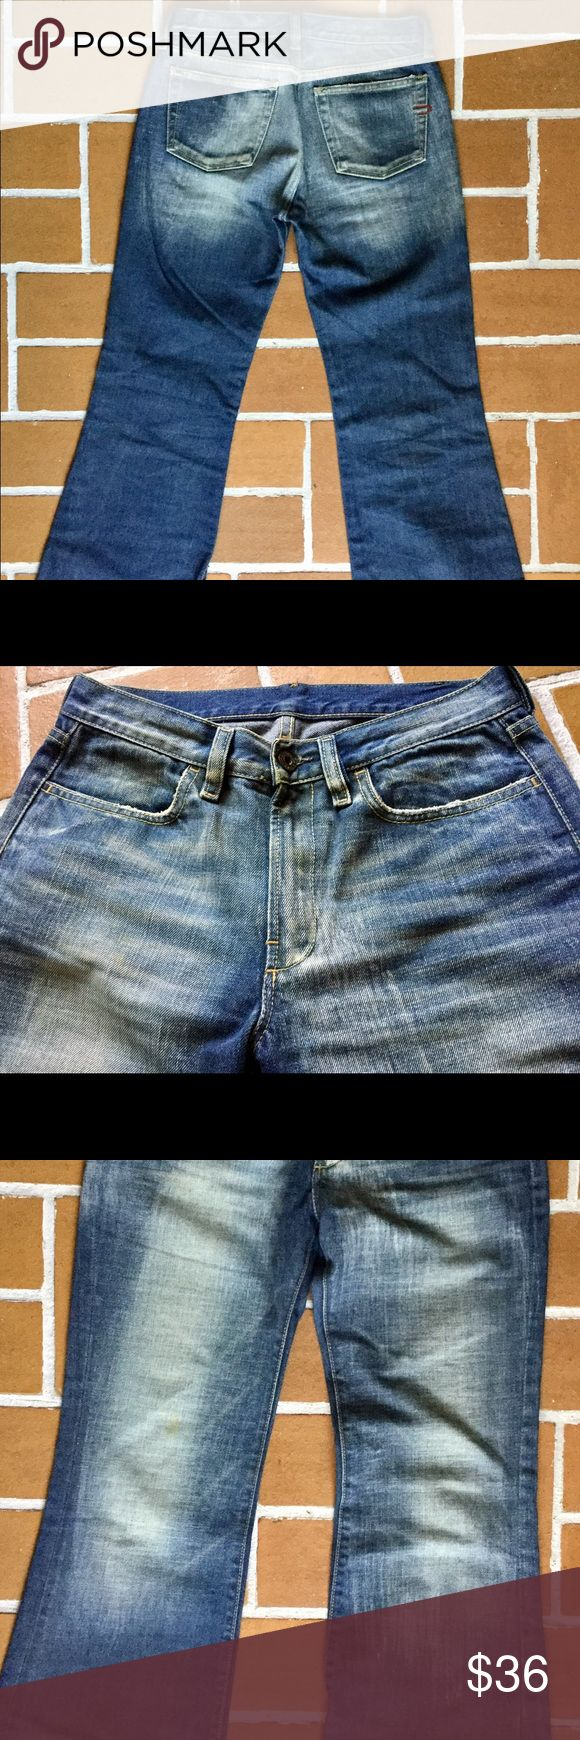 Diesel straight leg denim Diesel denim with awesome frost like fade effect, great wash. Only worn twice. 100% cotton Diesel Jeans Straight Leg